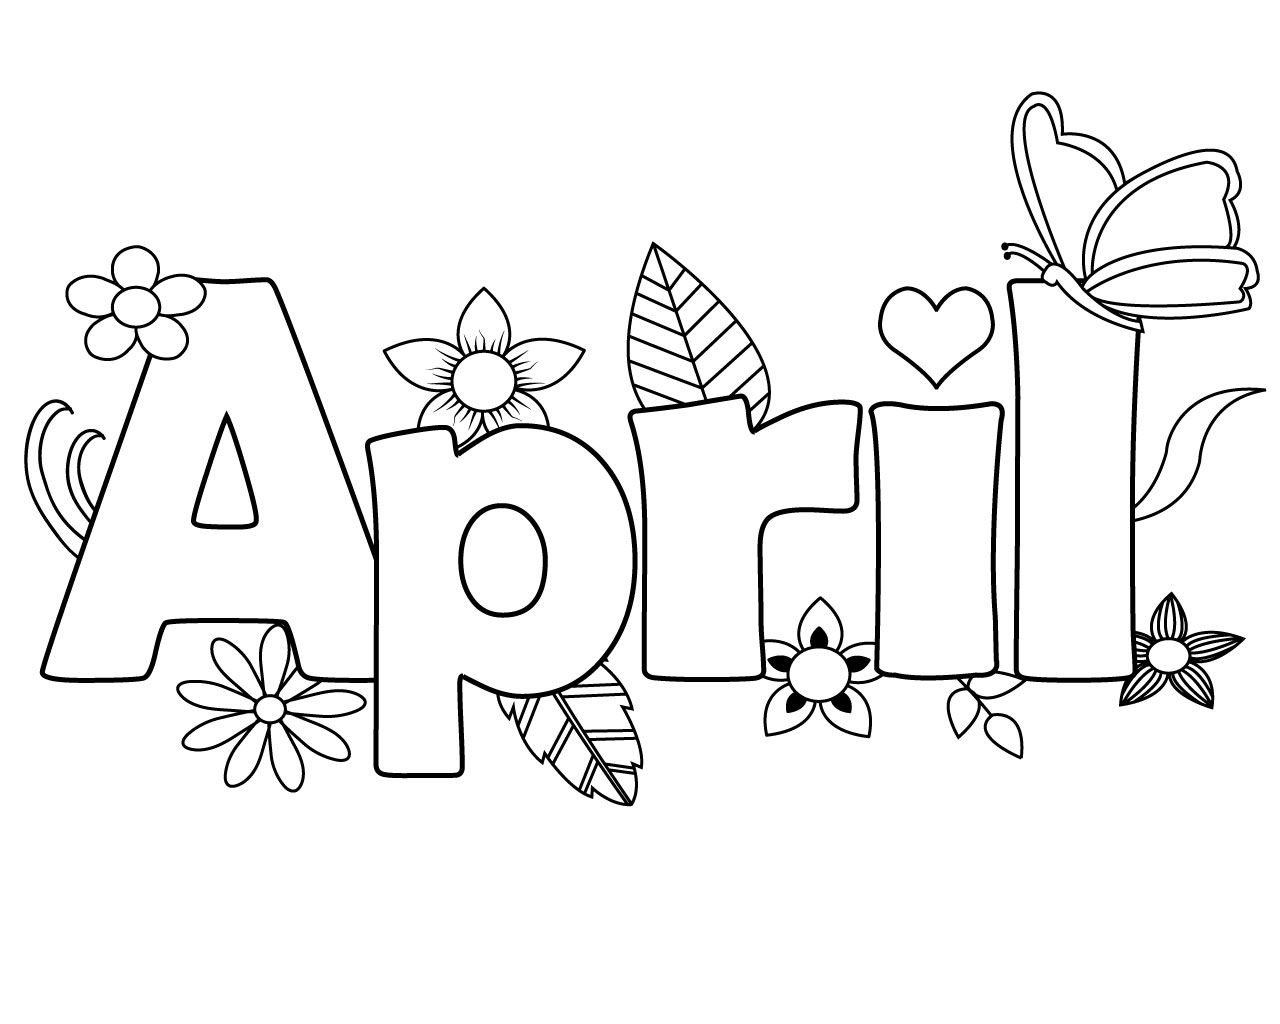 April Coloring Pages Free Coloring Pages Coloring Pages Free Kids Coloring Pages